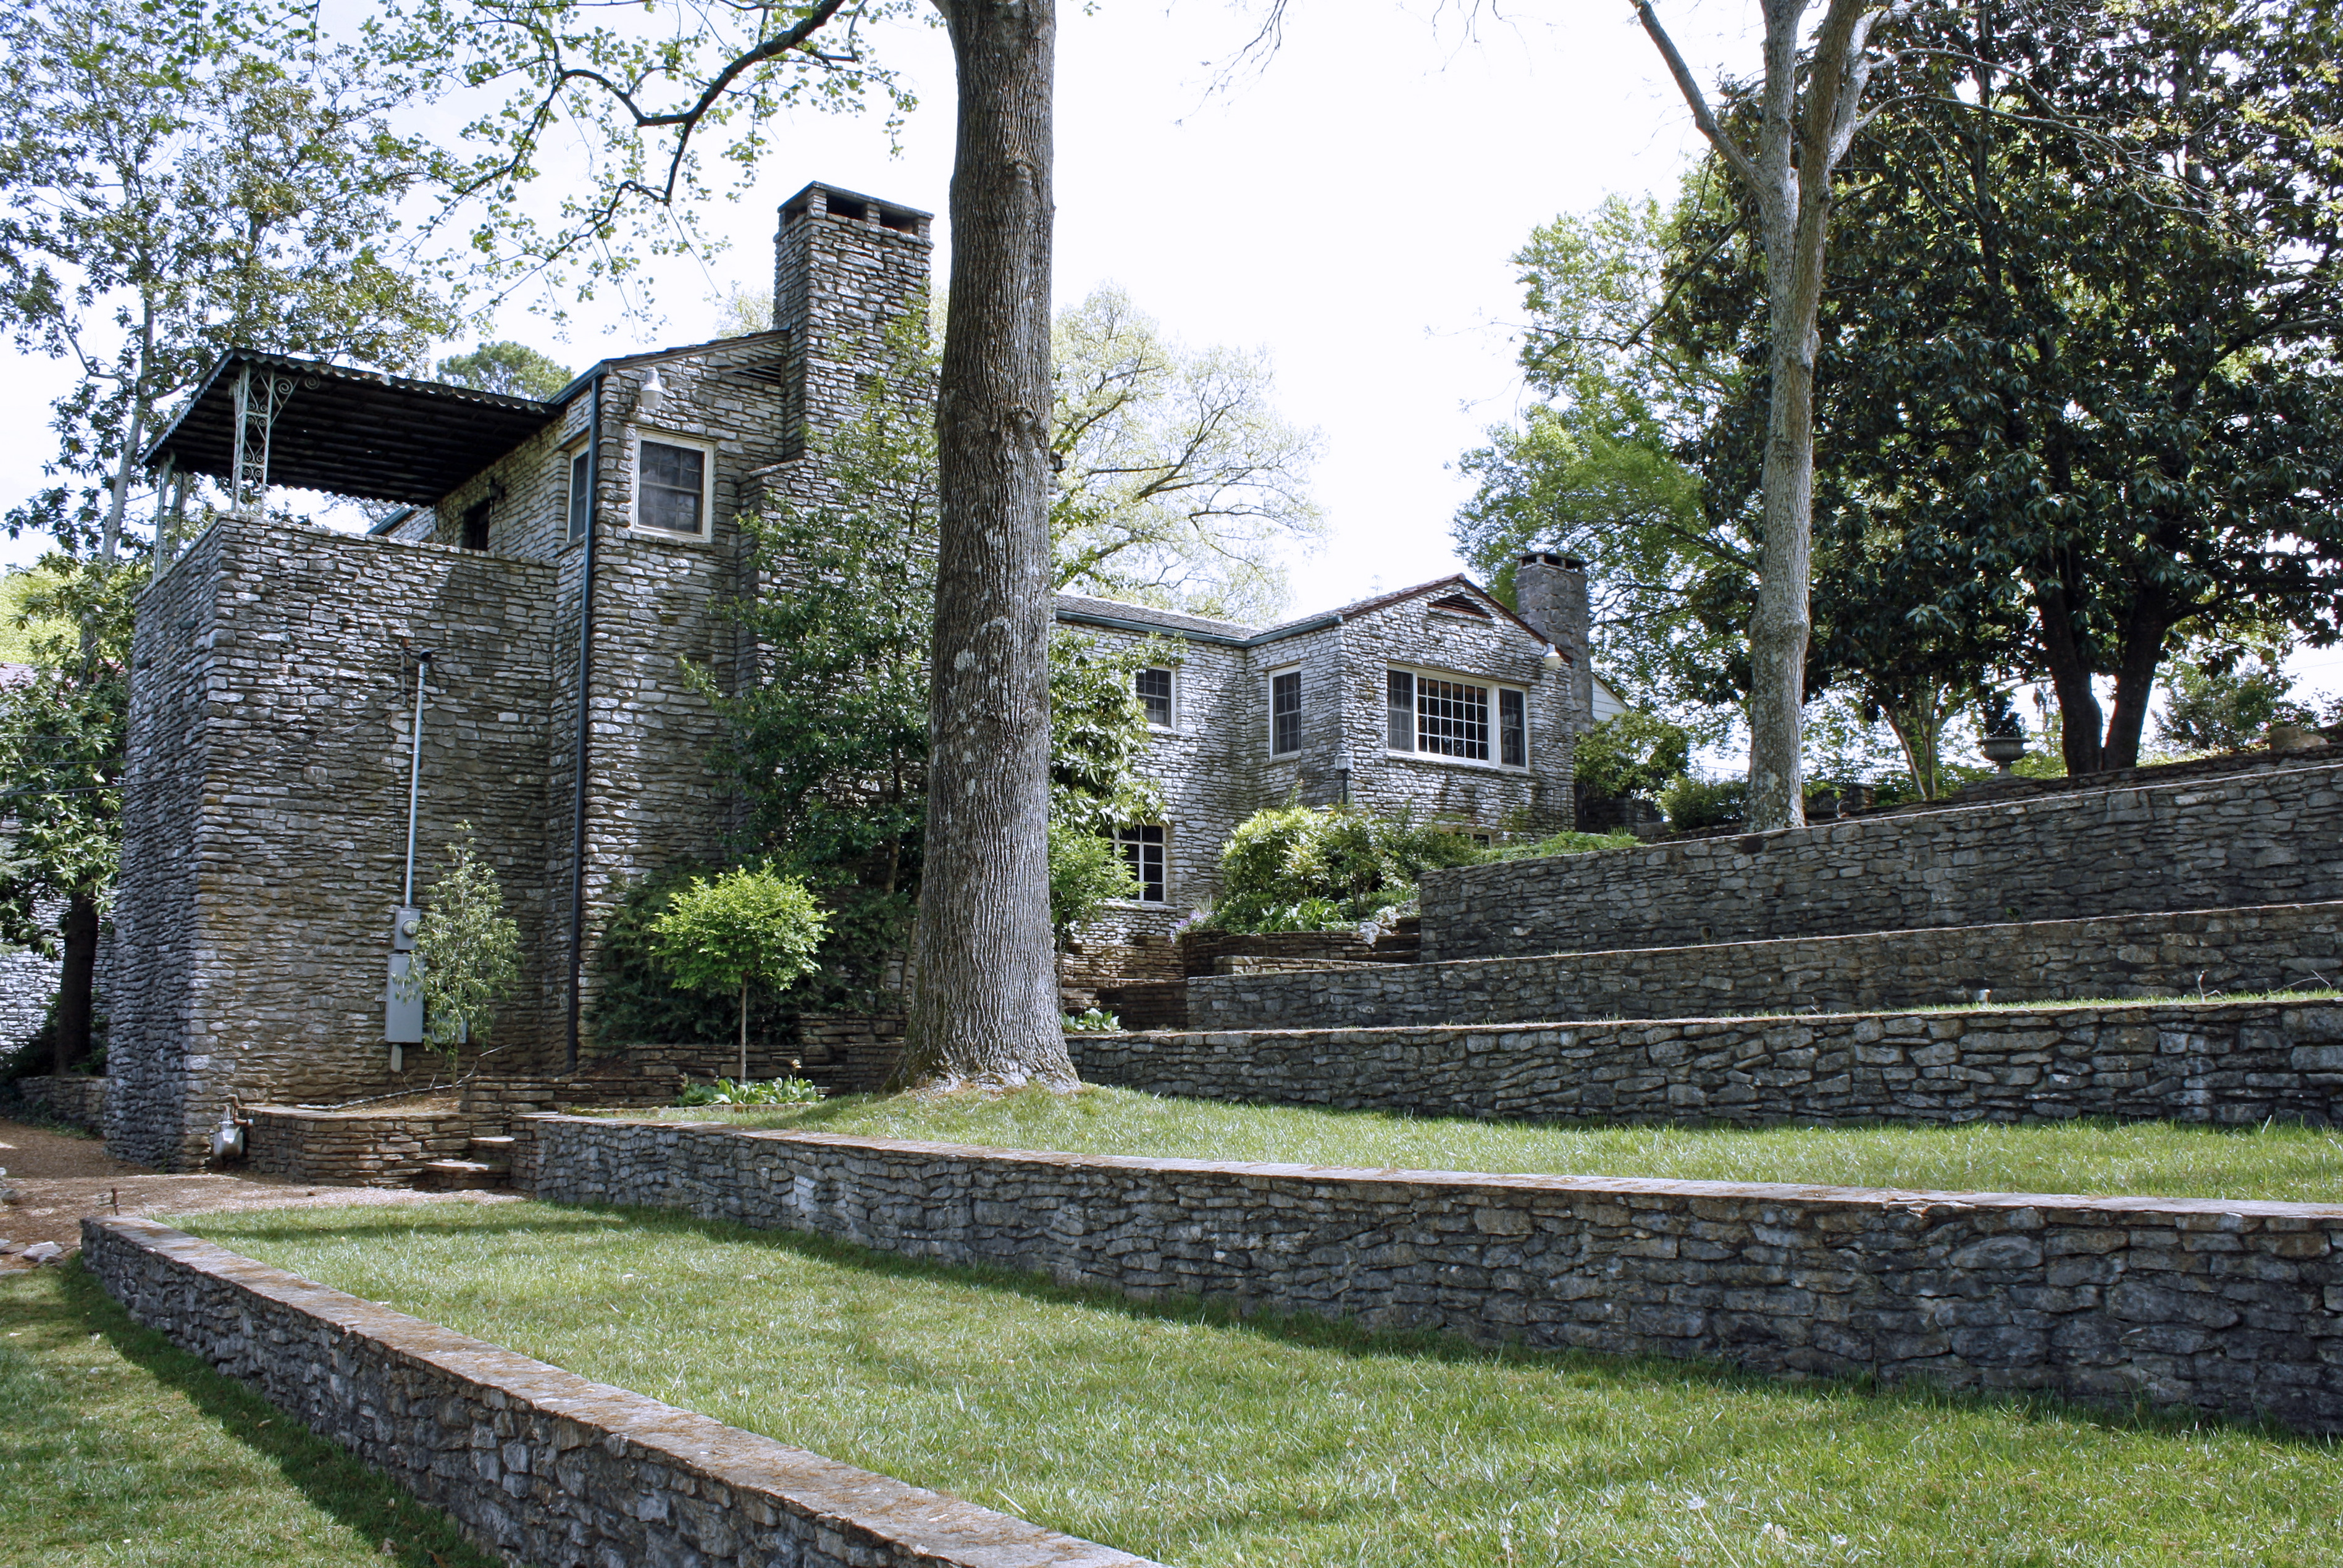 Superieur Joe Howell Studied Landscape Design And Fell In Love With Stonework. After  Establishing The Joe N. Howell Landscape Nurseries In 1942, He Constructed  Stone ...